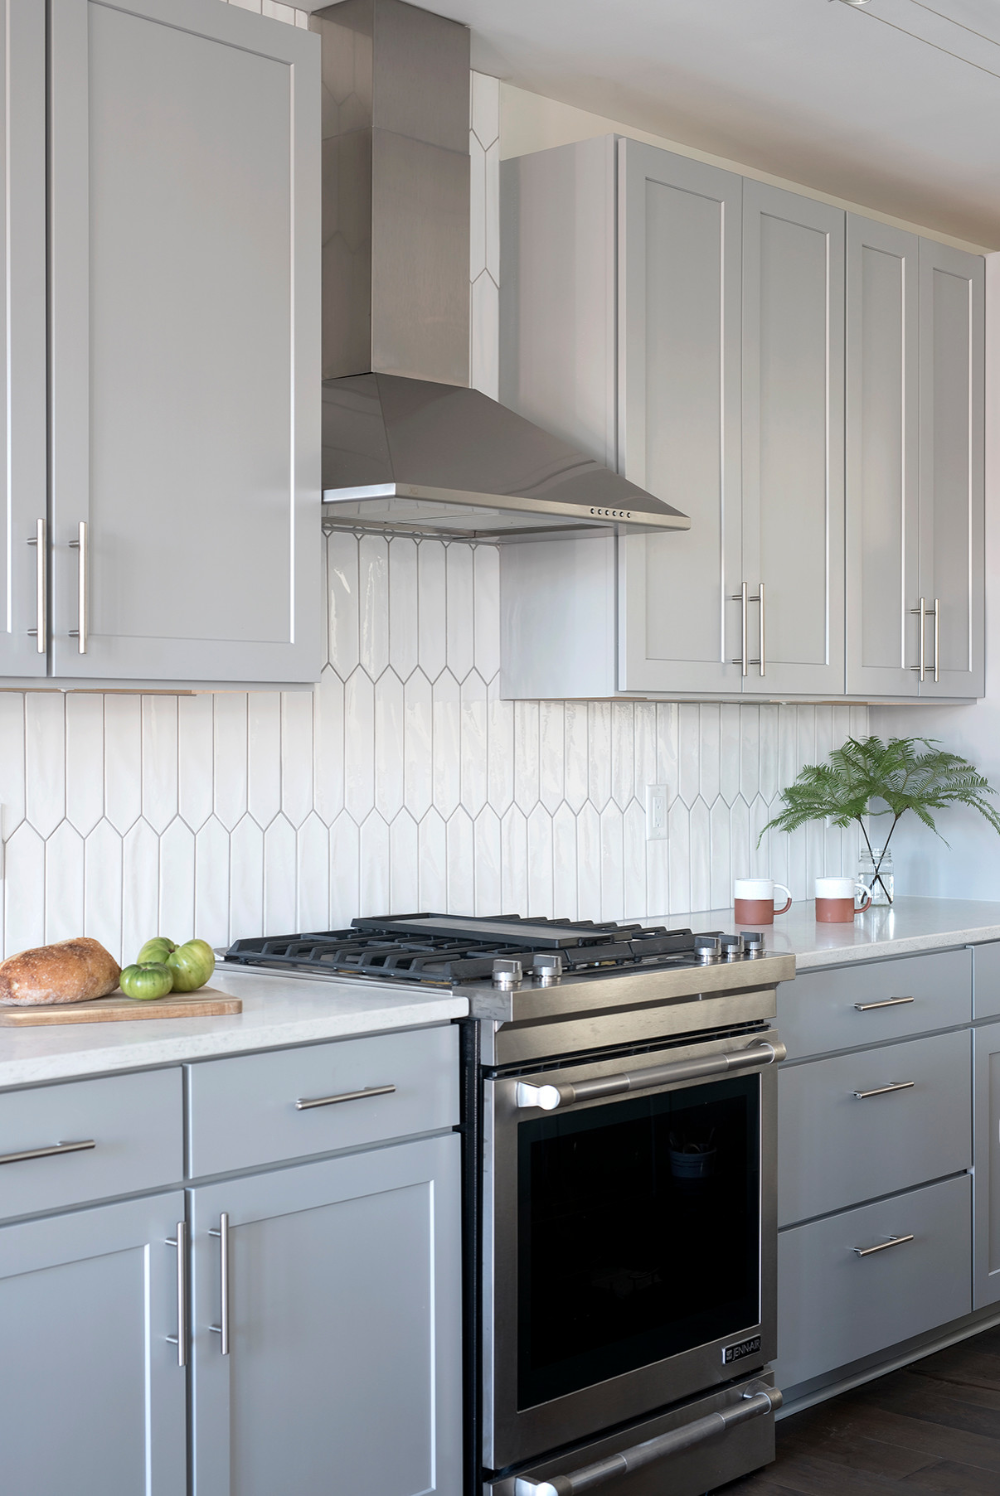 Scandinavian Inspired Condo In Portland Maine Scandinavian Kitchen Portland Maine By Fior In 2020 White Galley Kitchens Galley Kitchens Interior Design Kitchen